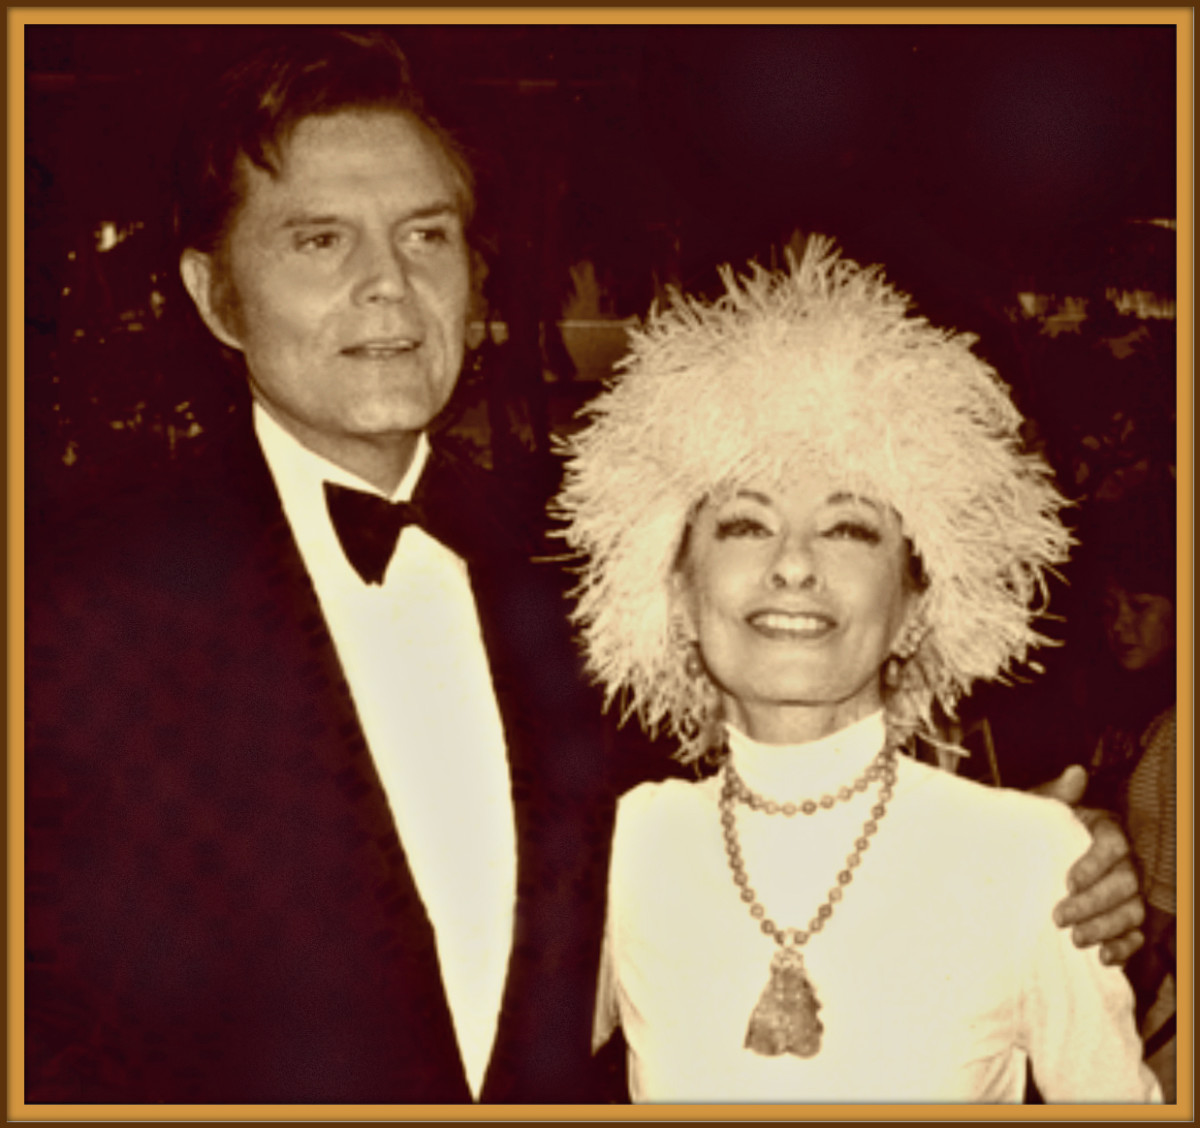 Jack Lord and his wife, Marie, chose to give back to the state of Hawaii and the charities in their endowment were greatly helped by their gift. Also the sales of Jack's memorabilia collection and their condominium was be added to the Lord's fund.